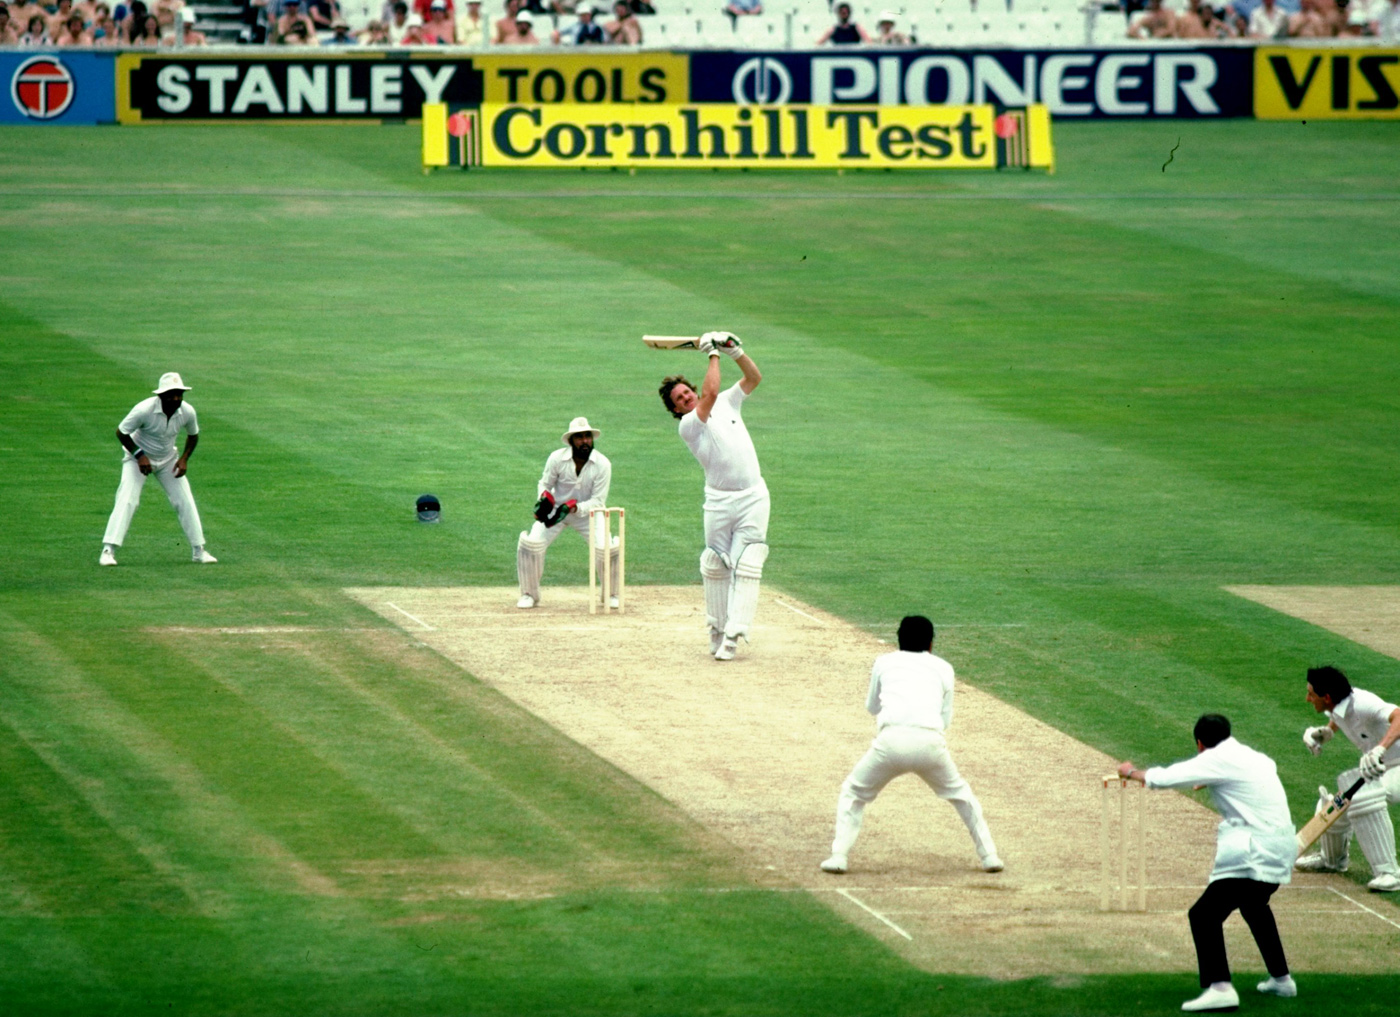 Sir Ian Botham: The unique combination of oomph and technique